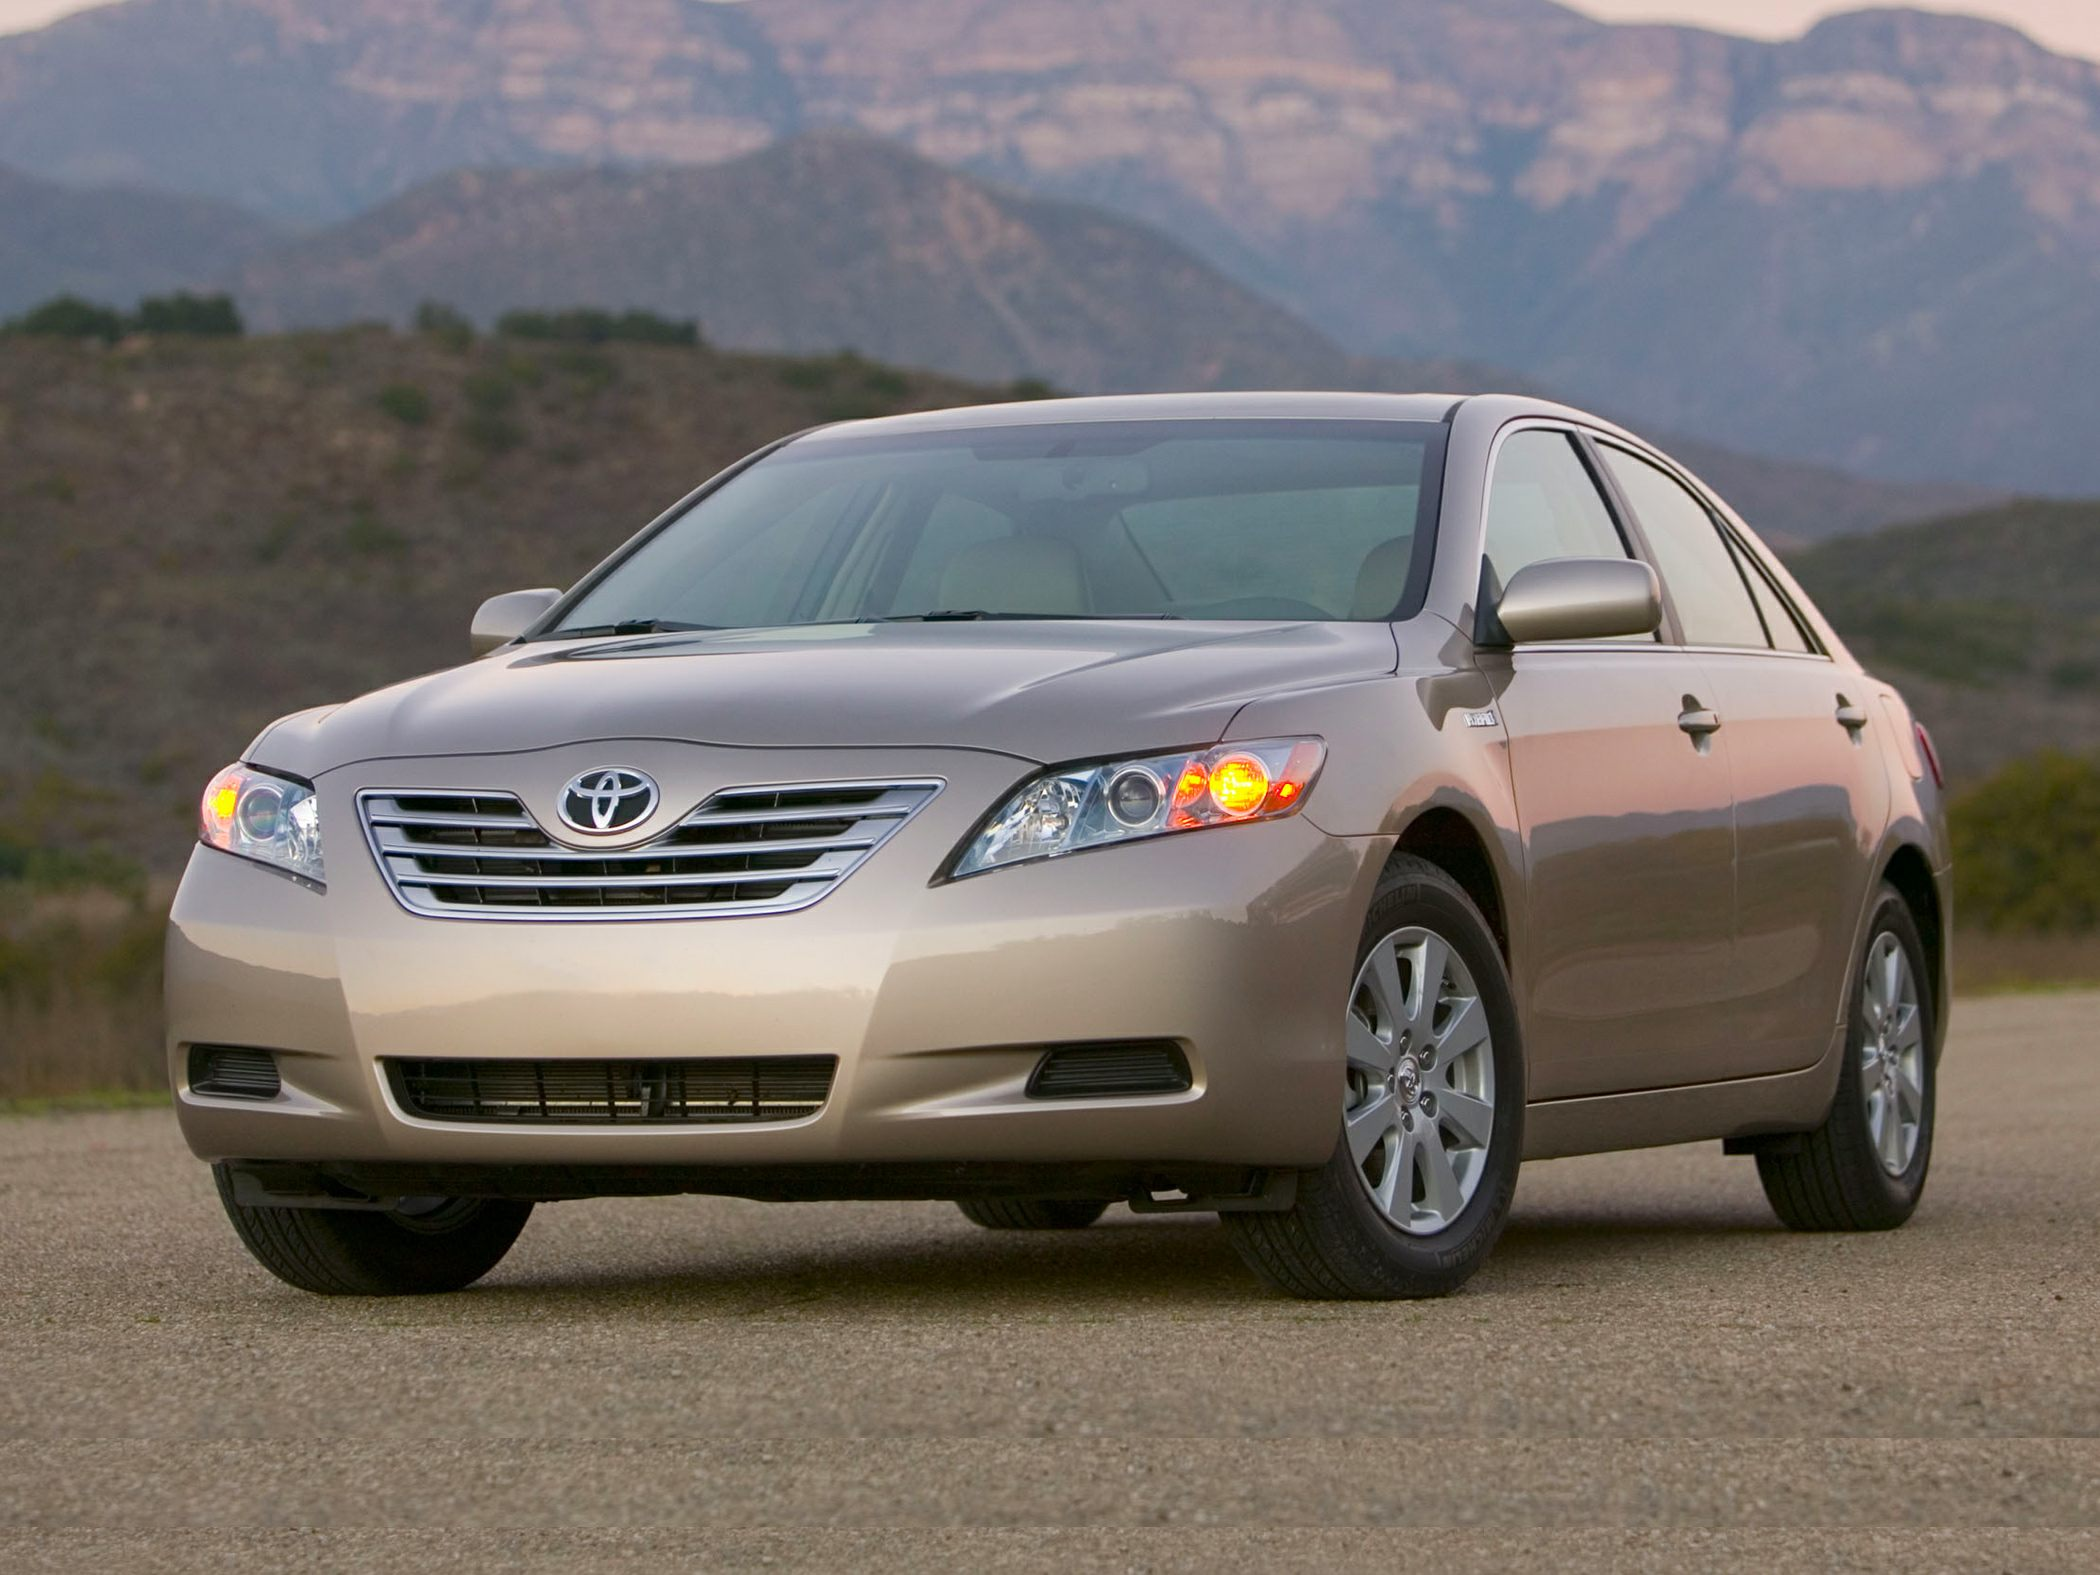 2009 Toyota Camry Hybrid Pictures